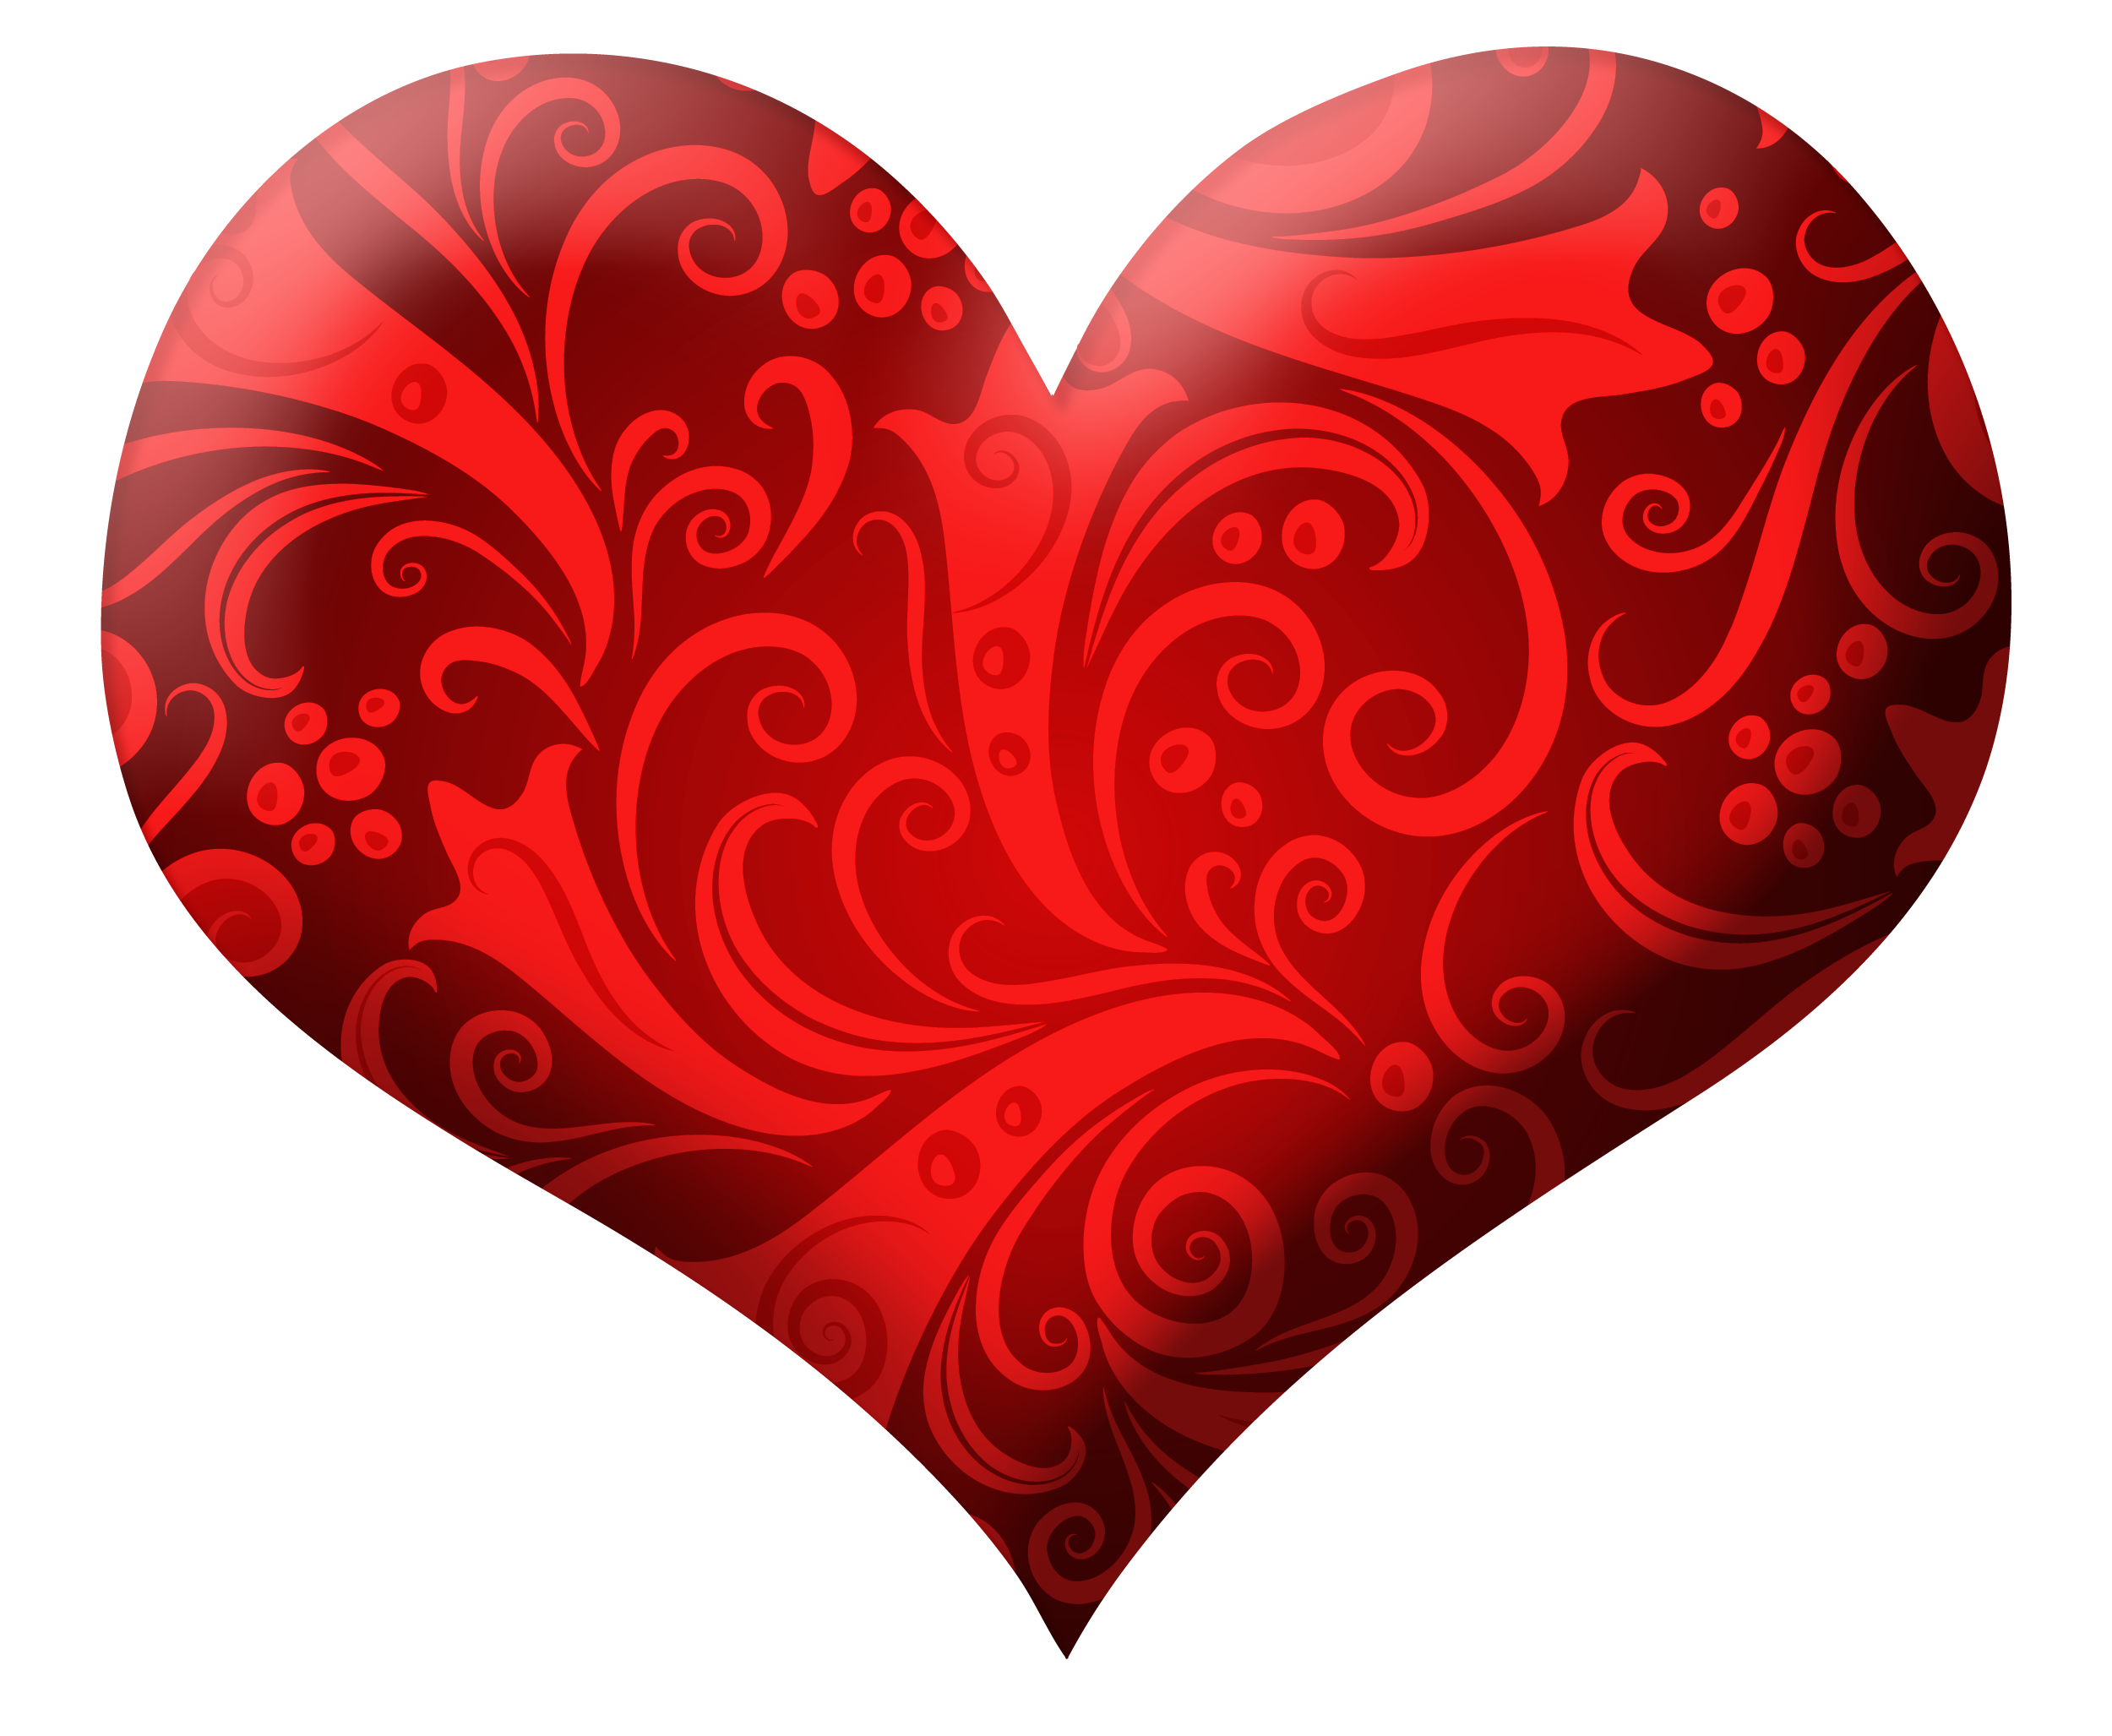 Hearts clipart design. Red heart with ornaments